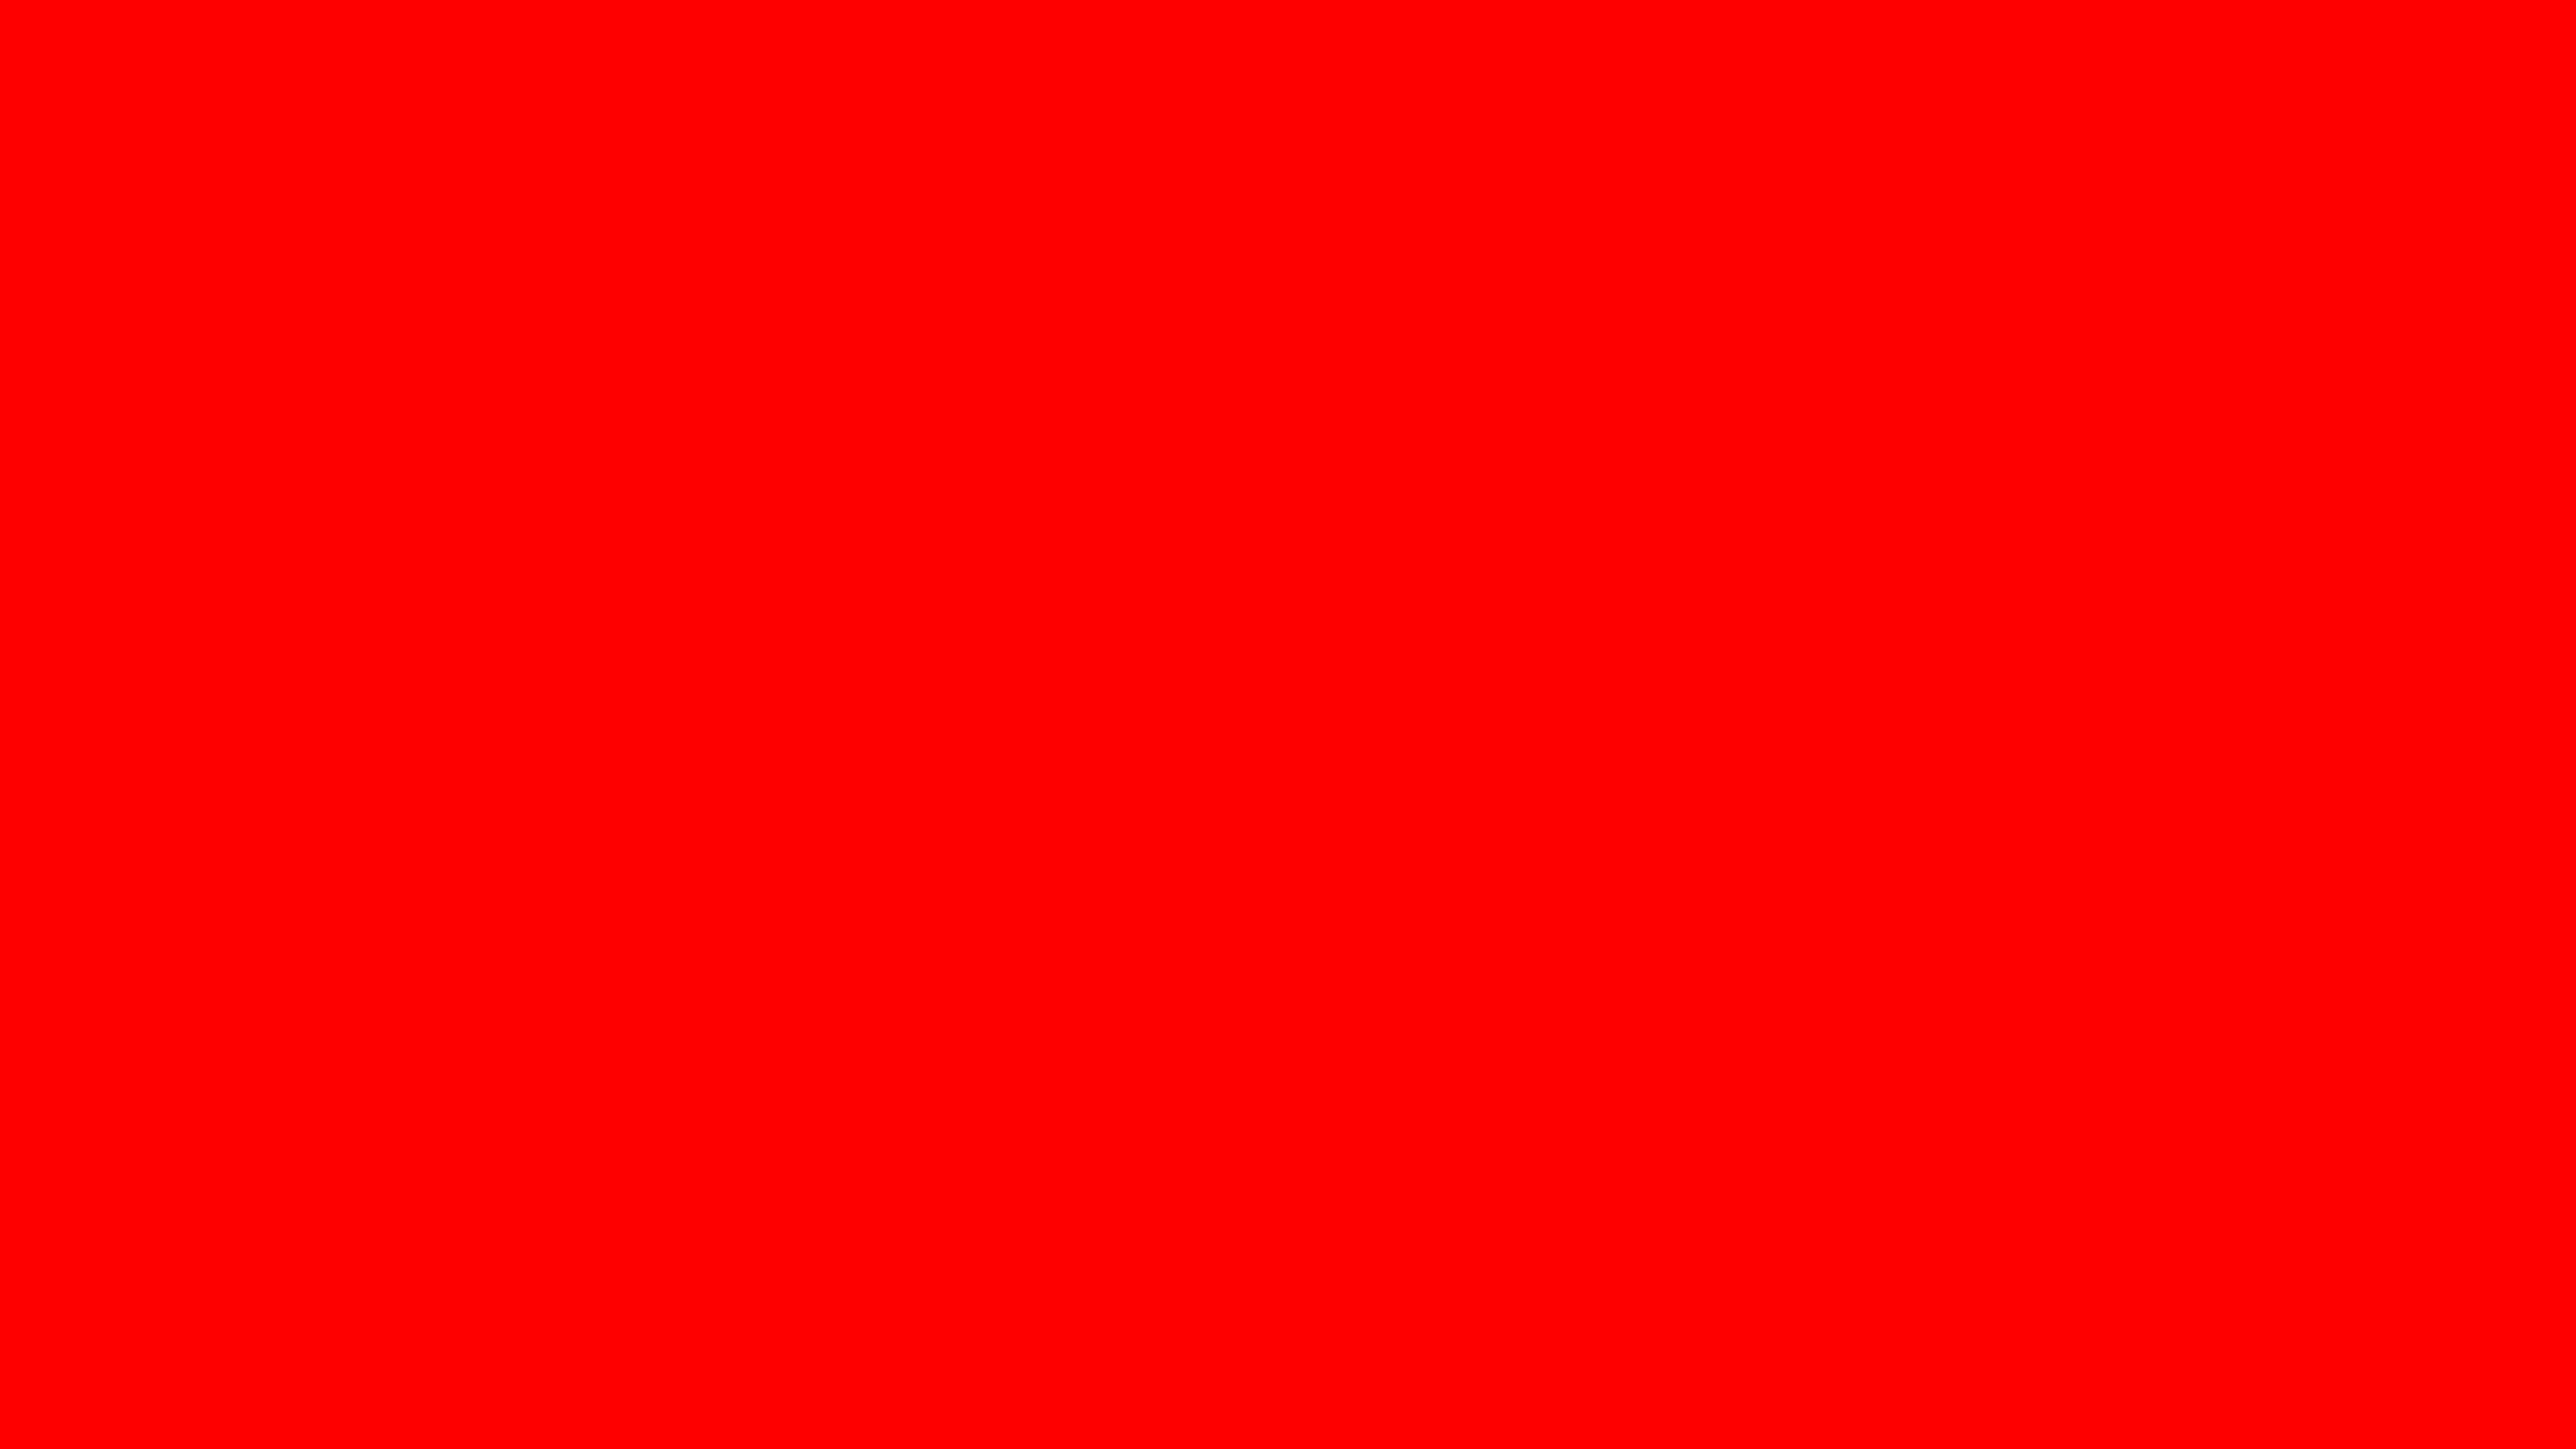 3840x2160 Red Solid Color Background